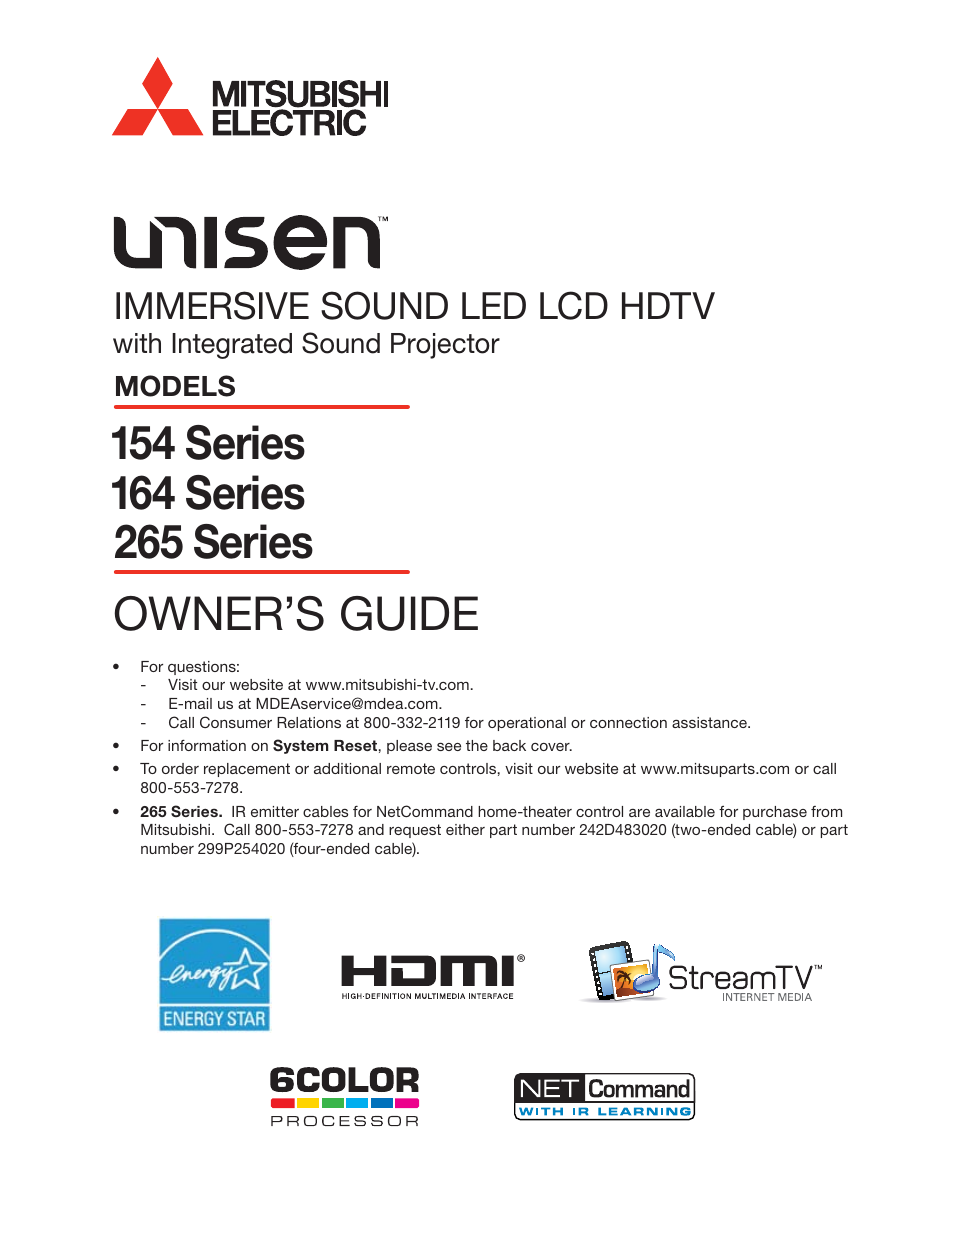 MITSUBISHI ELECTRIC LT-55154 User Manual | 104 pages | Also for: LT-40164,  LT-46164, LT-55164, LT-46265, LT-55265